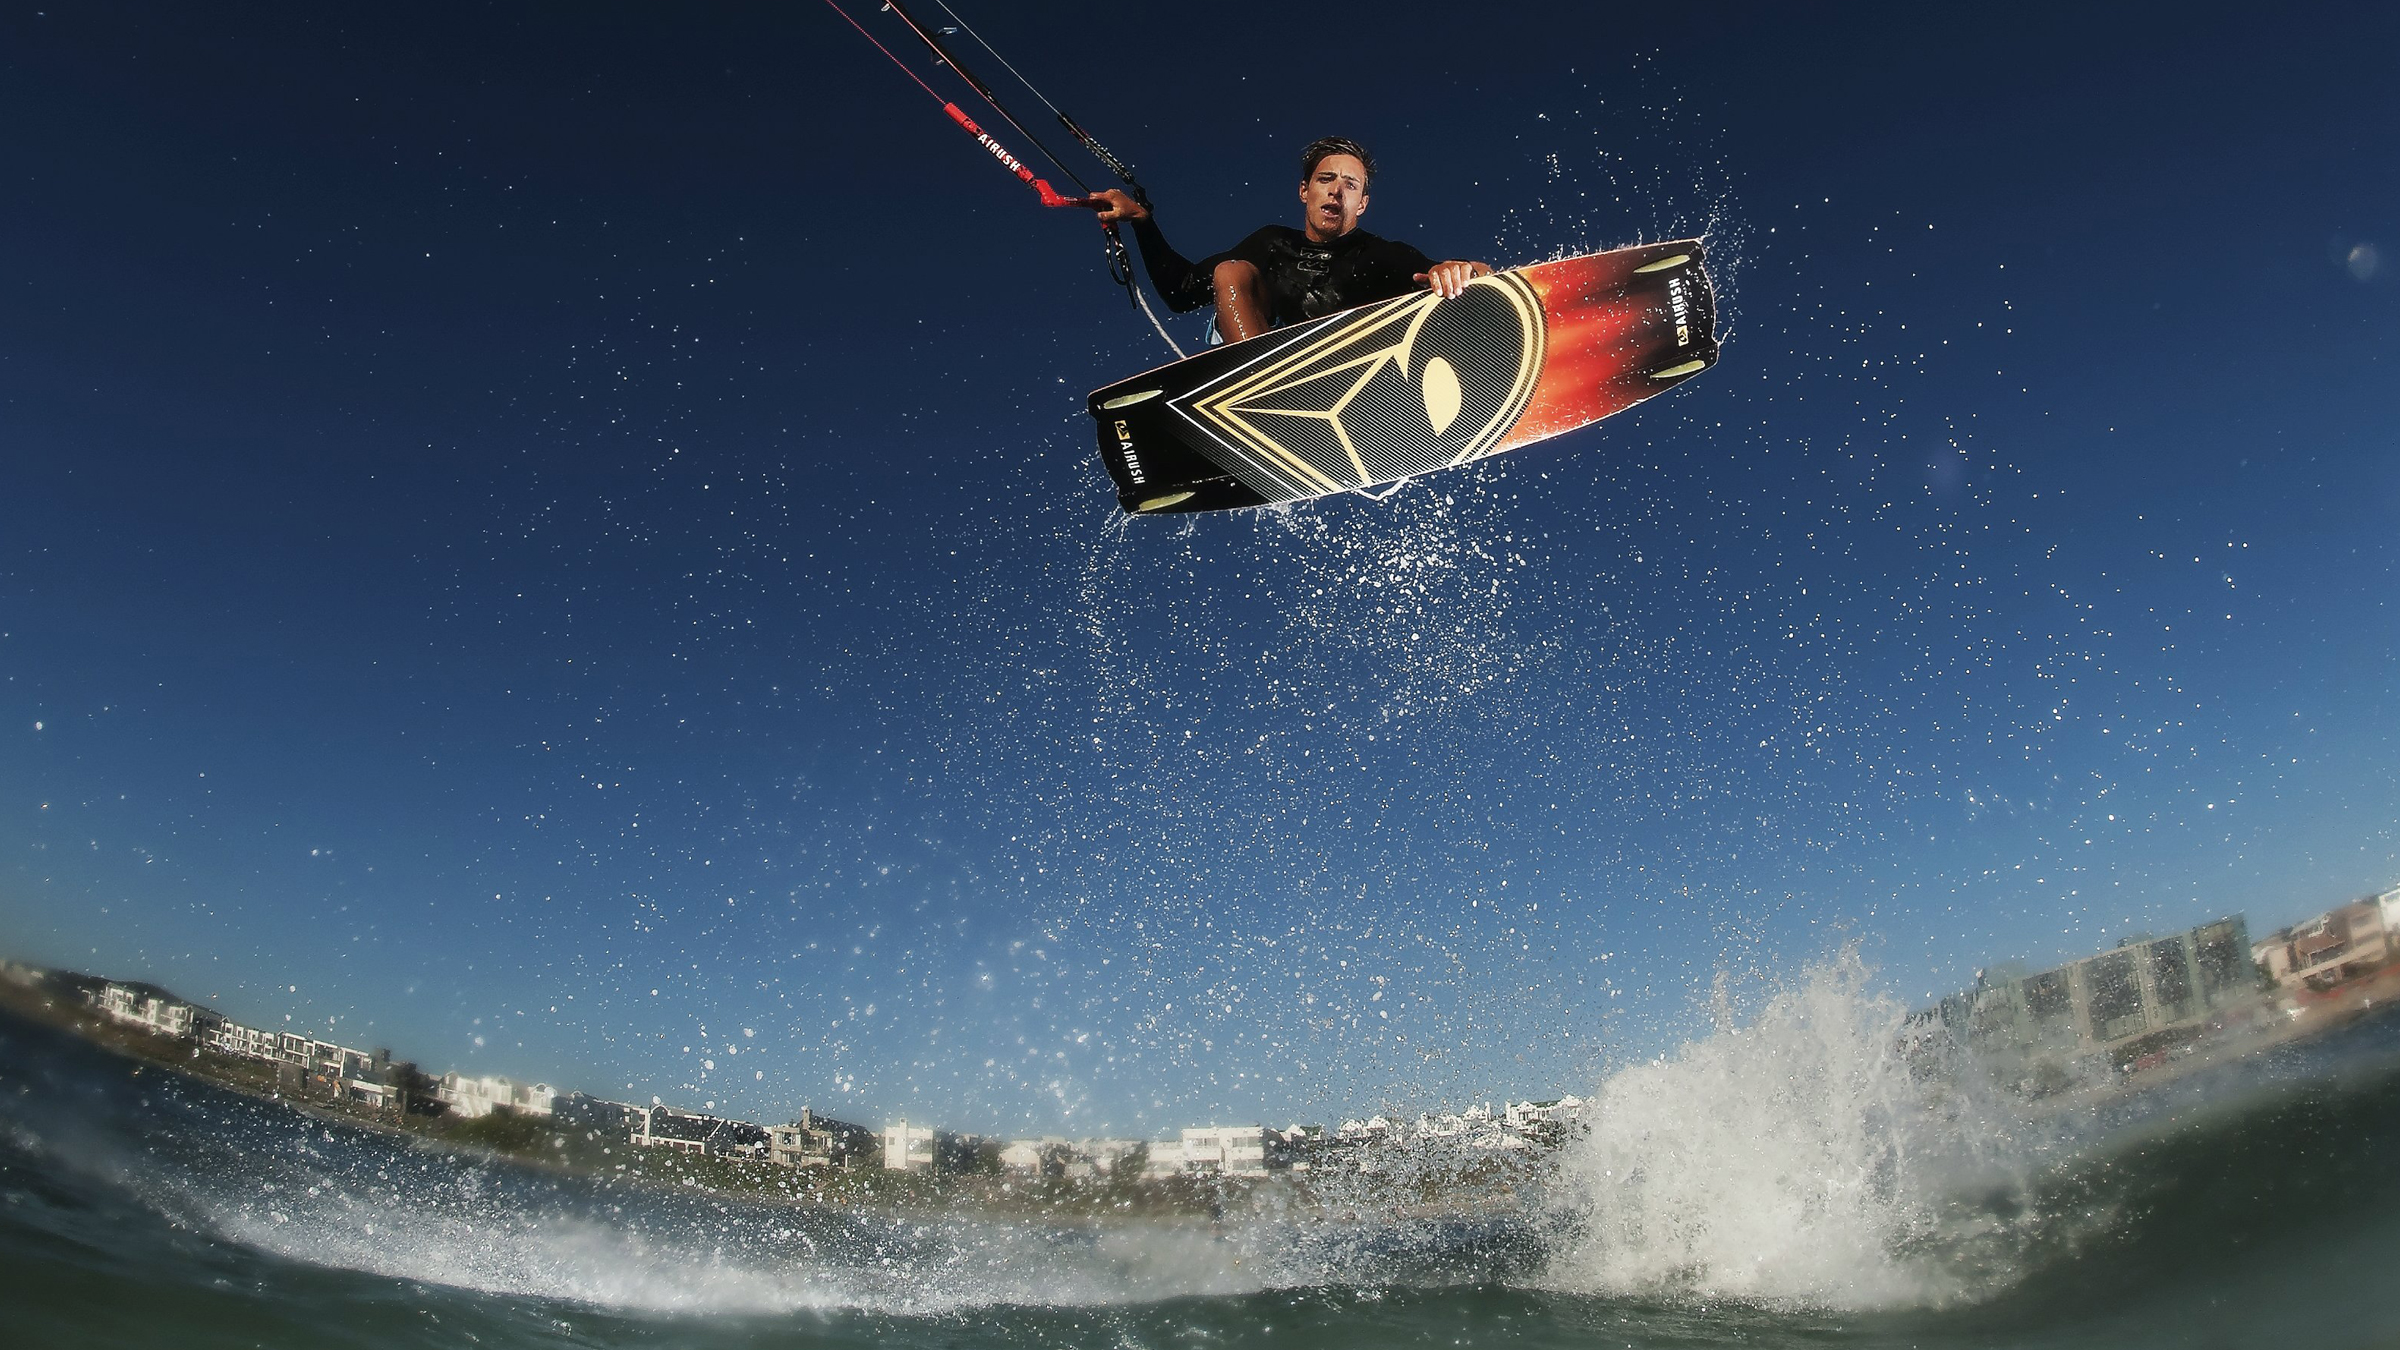 kitesurf wallpaper image - Oswald Smith with a nice Indie Grab at twilight - in resolution: High Definition - HD 16:9 2400 X 1350